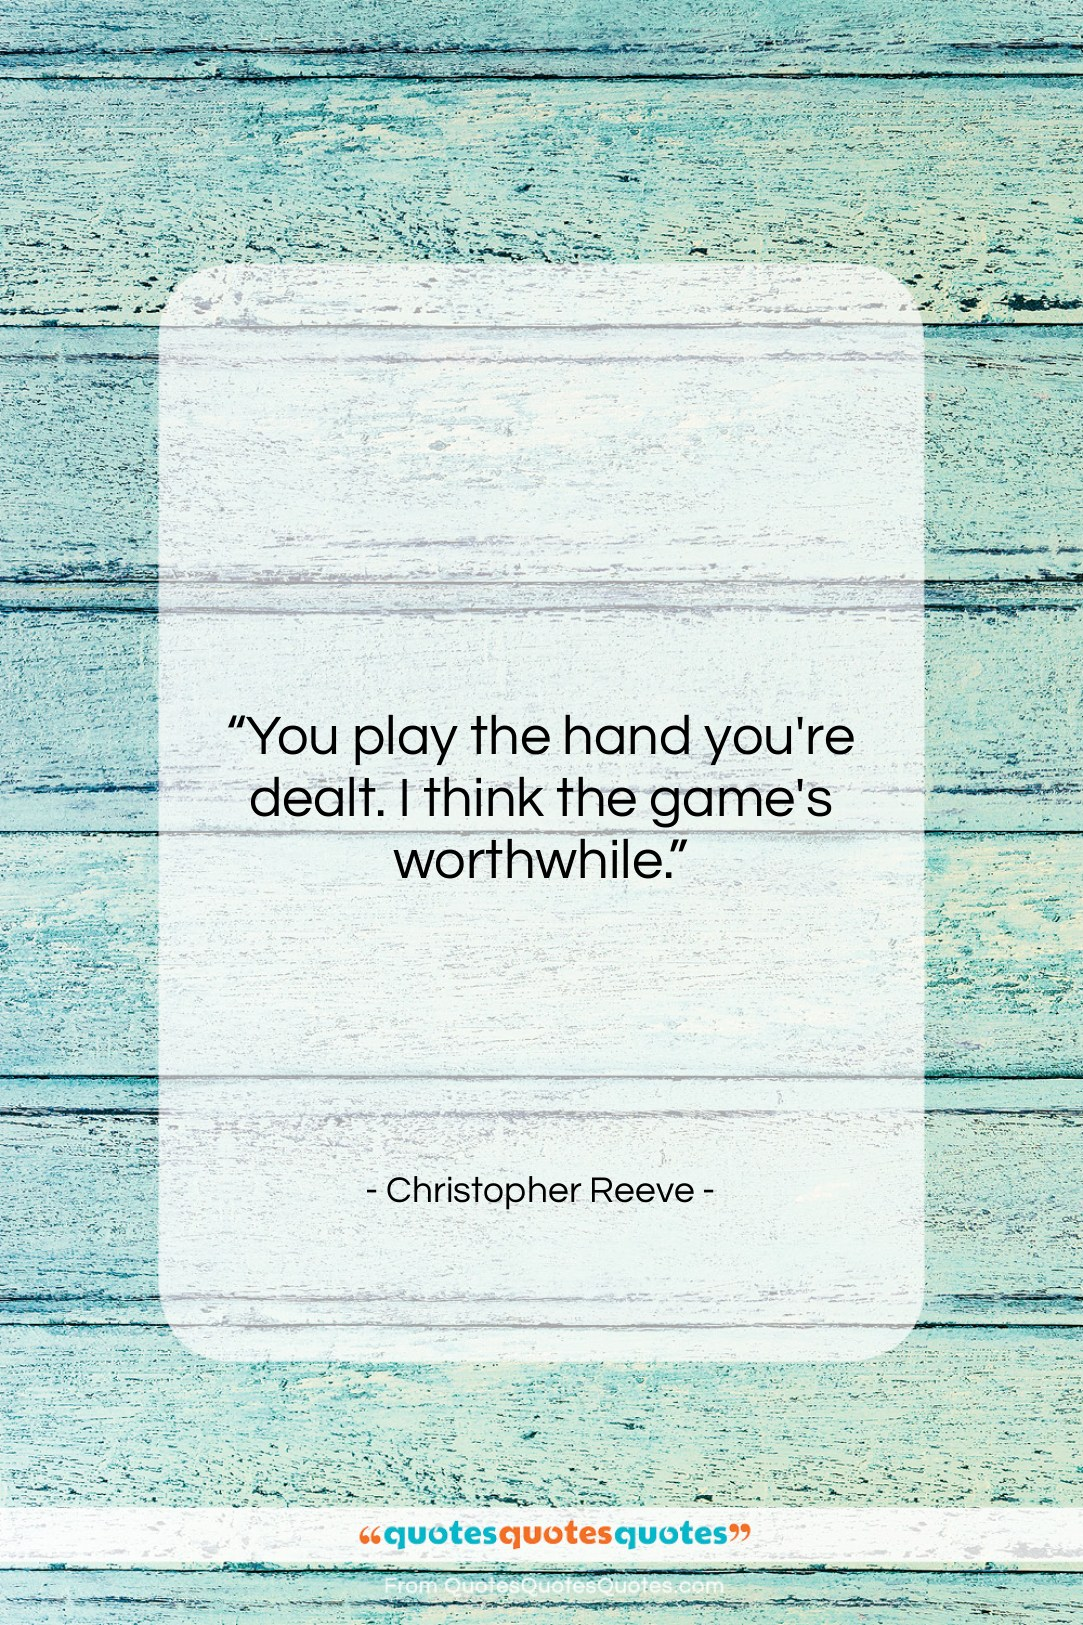 Get The Whole Christopher Reeve Quote You Play The Hand Youre